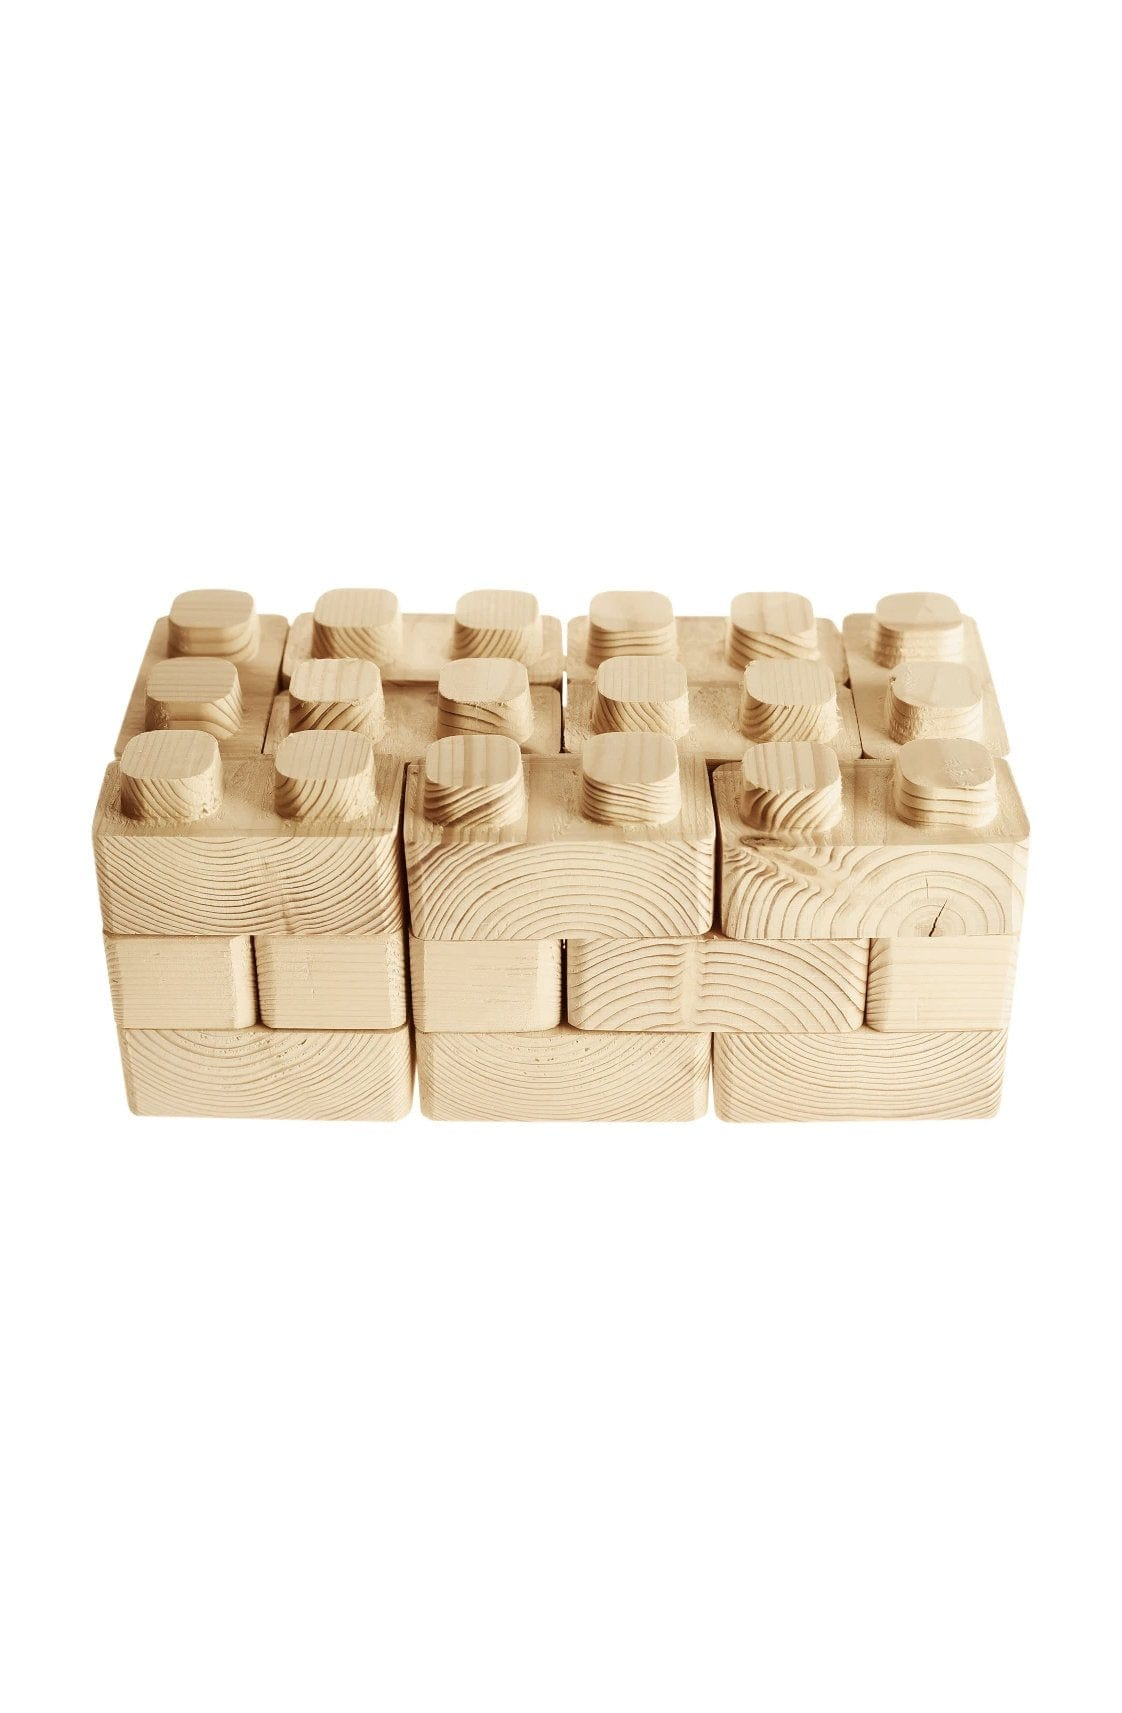 Pislik Wooden Connecting Blocks - Hello Little Birdie